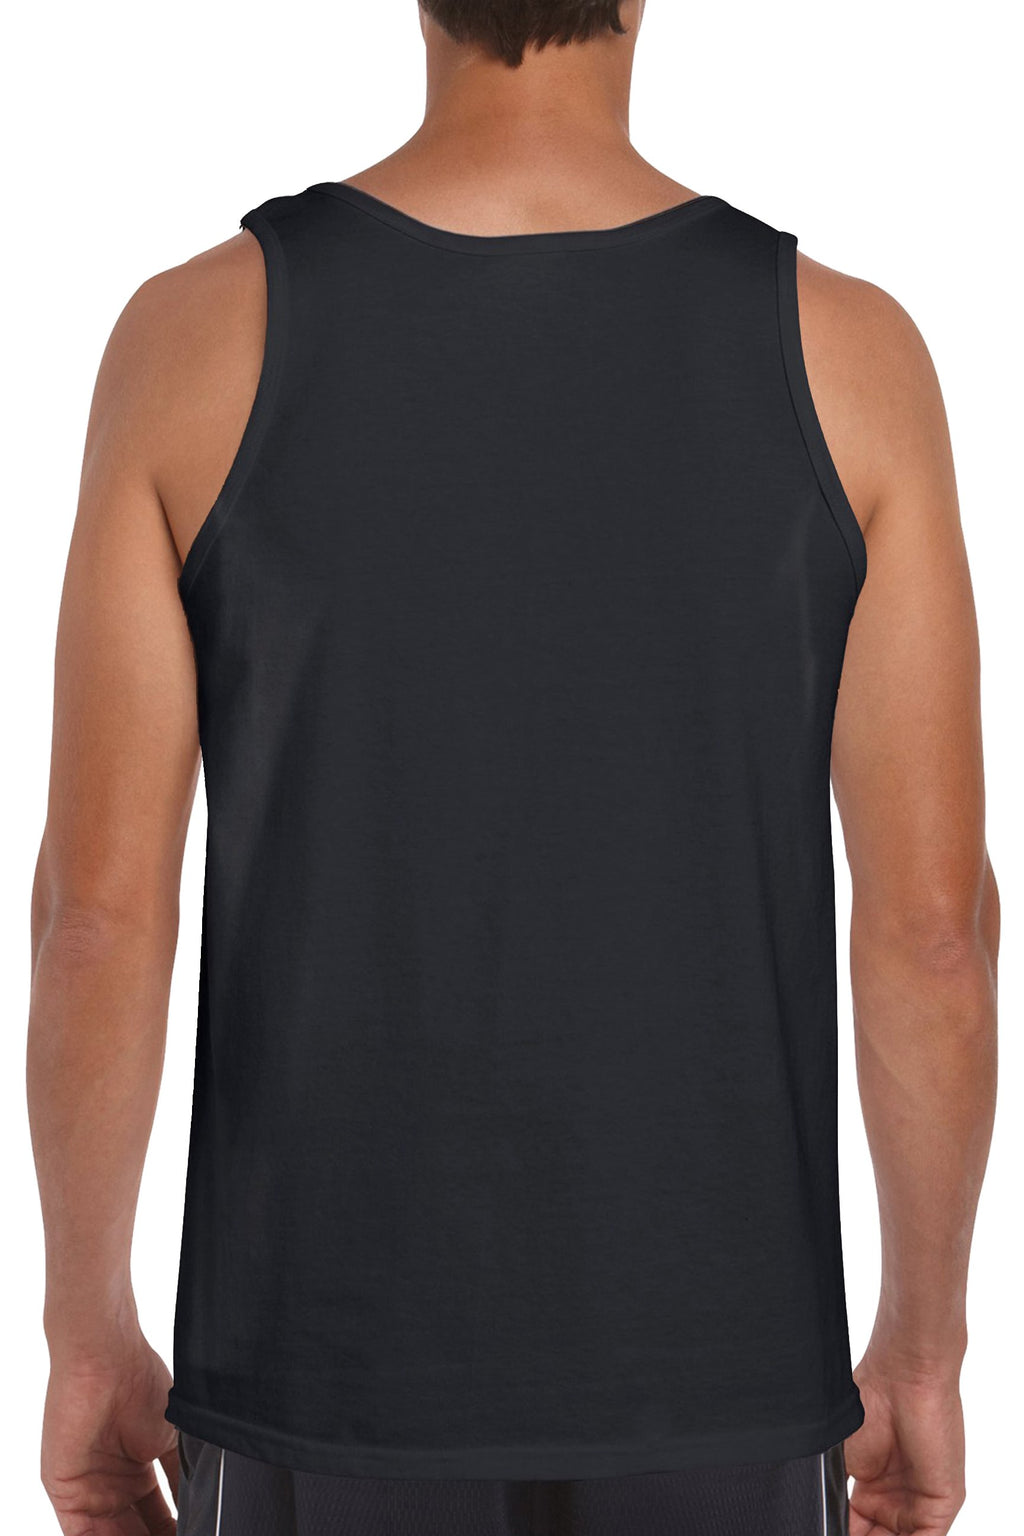 Men's Bodybuilding For Life Tank Top Shirt